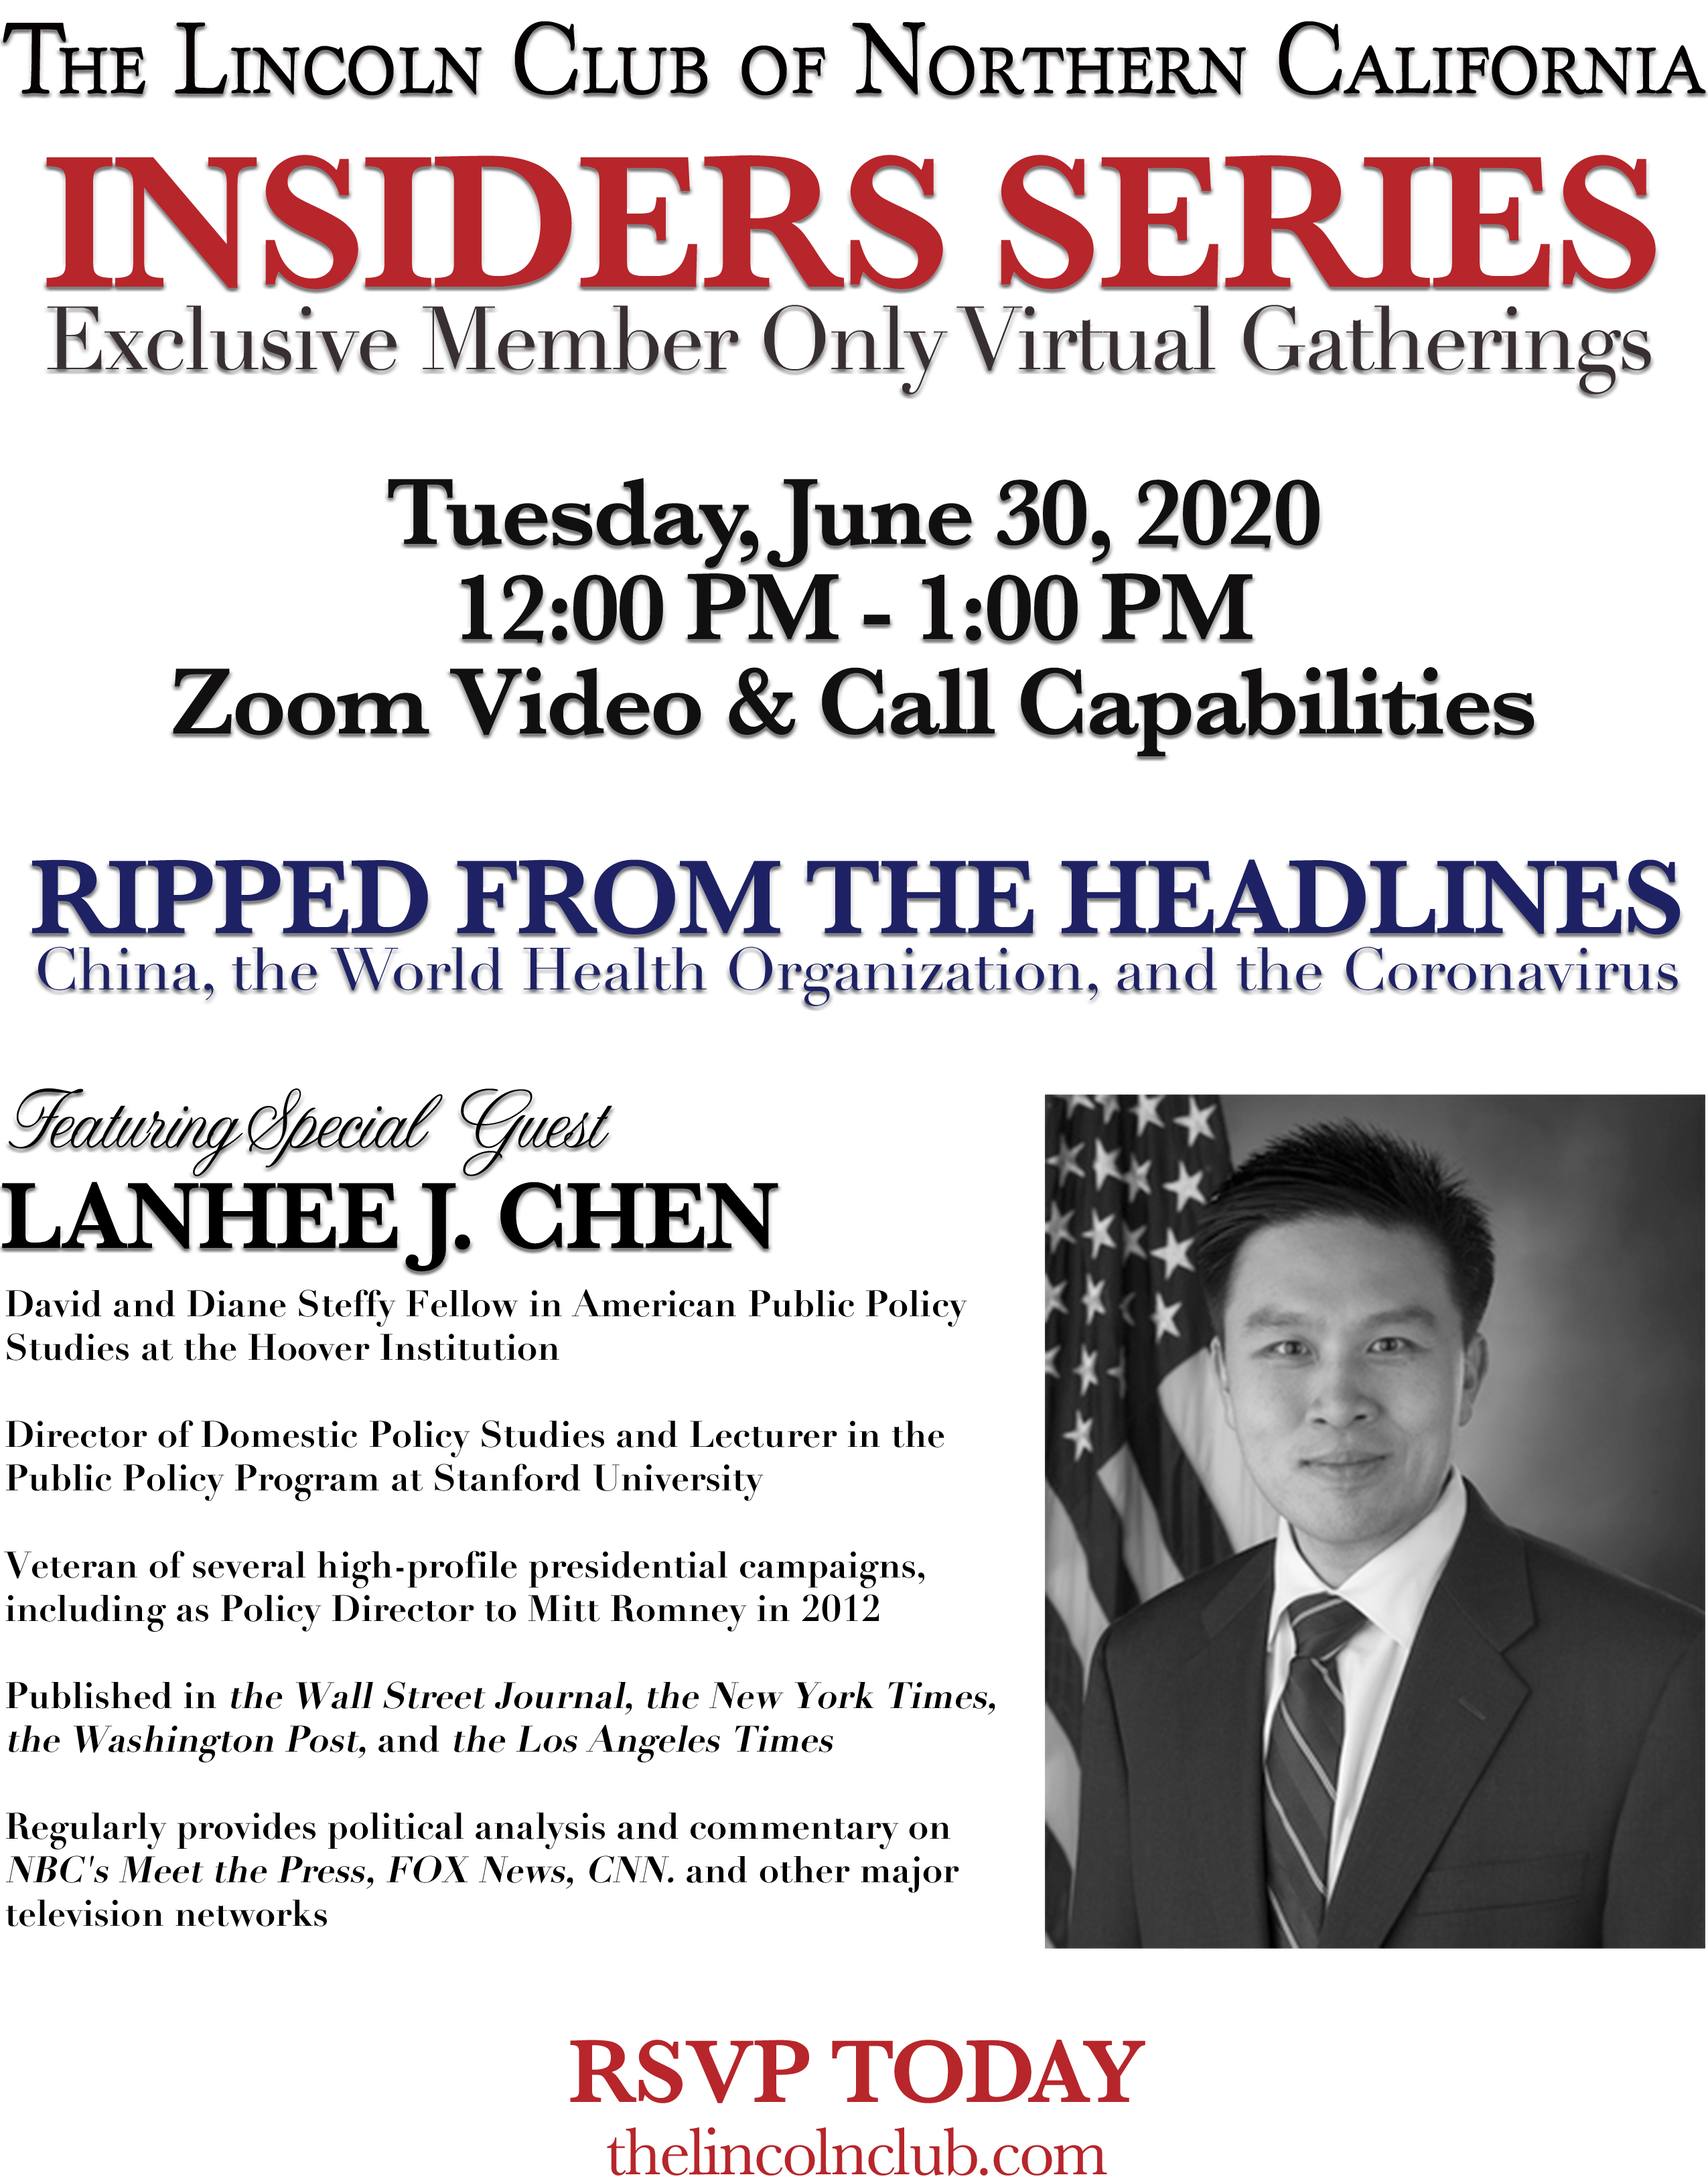 Insiders Series with Lanhee Chen Invite